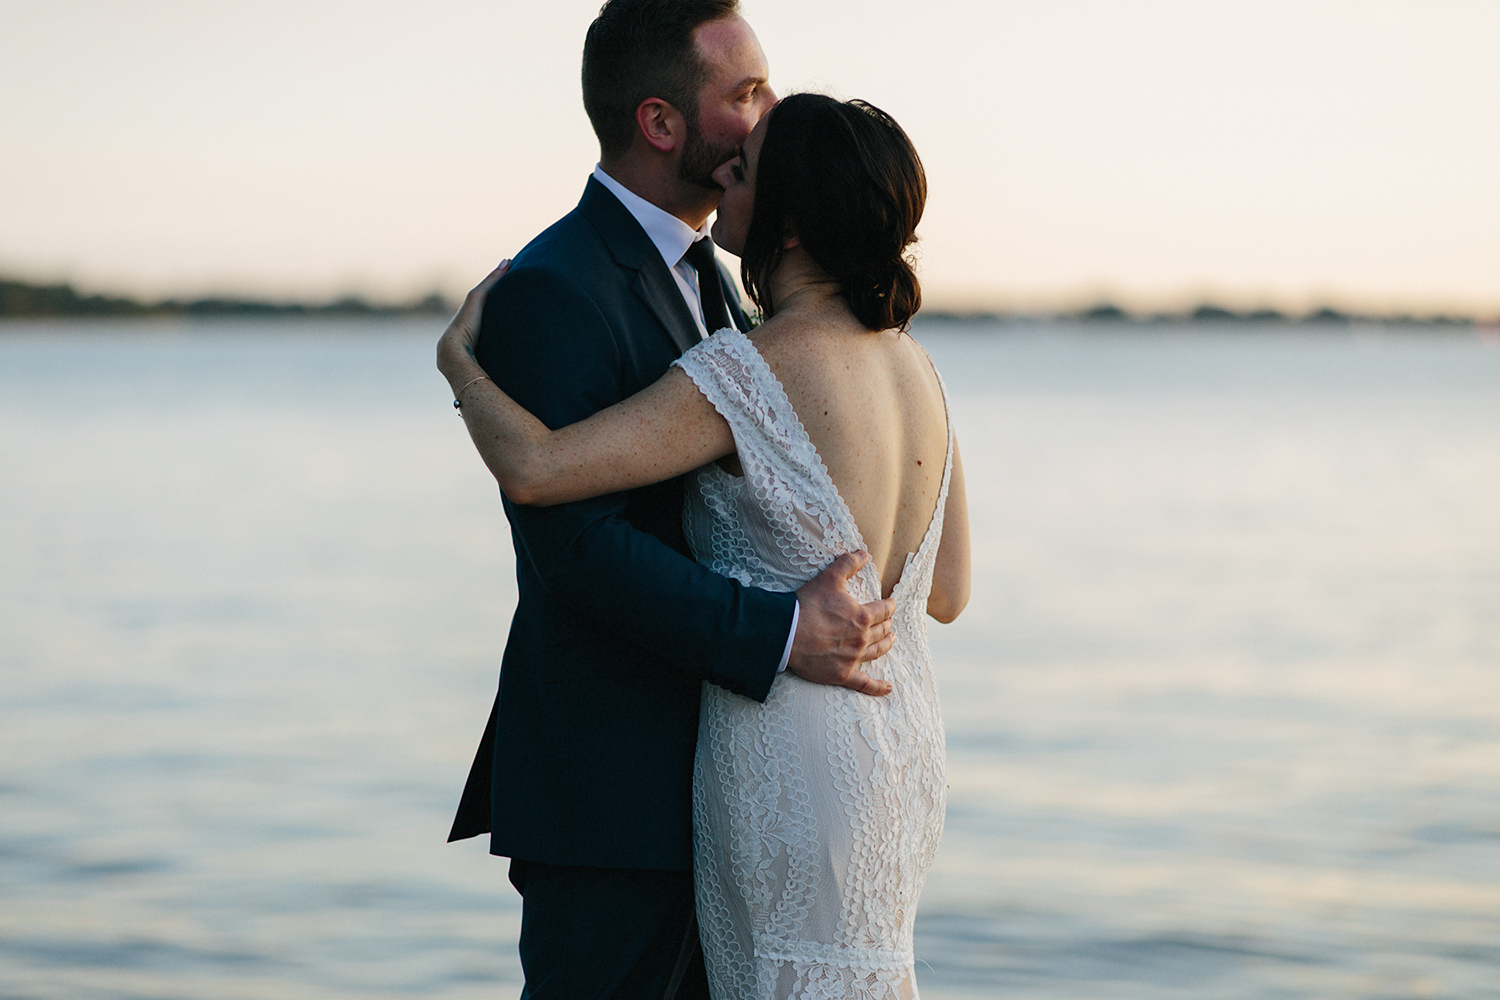 Best-Wedding-photographers-Toronto-Natural-Candid-wedding-photography-Airship37-Sunset-Portraits-City-Skyline-polson-pier-bride-and-groom-portraits-intimate-real-lakeside-moody-cinematic.jpg